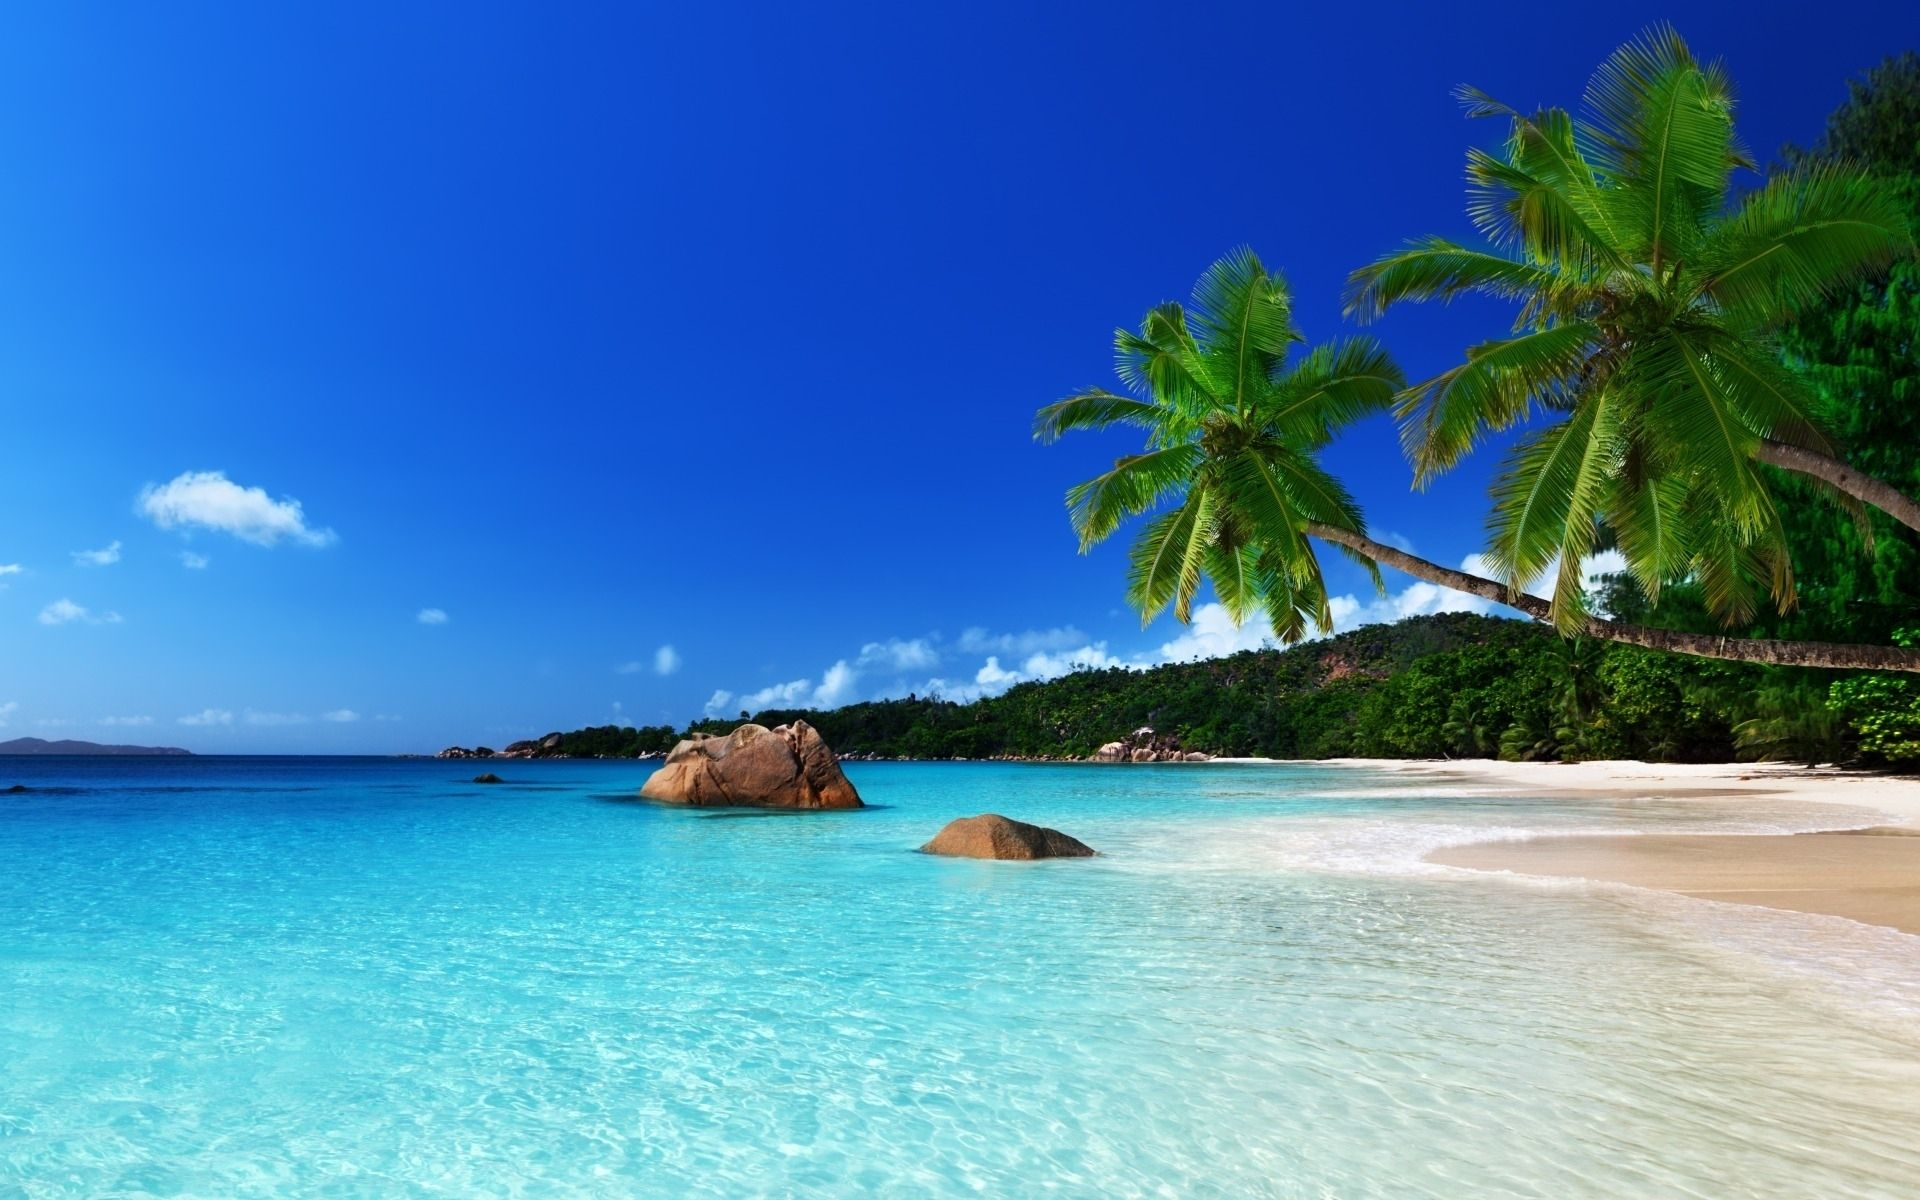 10 Latest Tropical Island Pictures Wallpaper Full Hd 1920 1080 For Pc Background Beach Wallpaper Tropical Paradise Beach Island Wallpaper